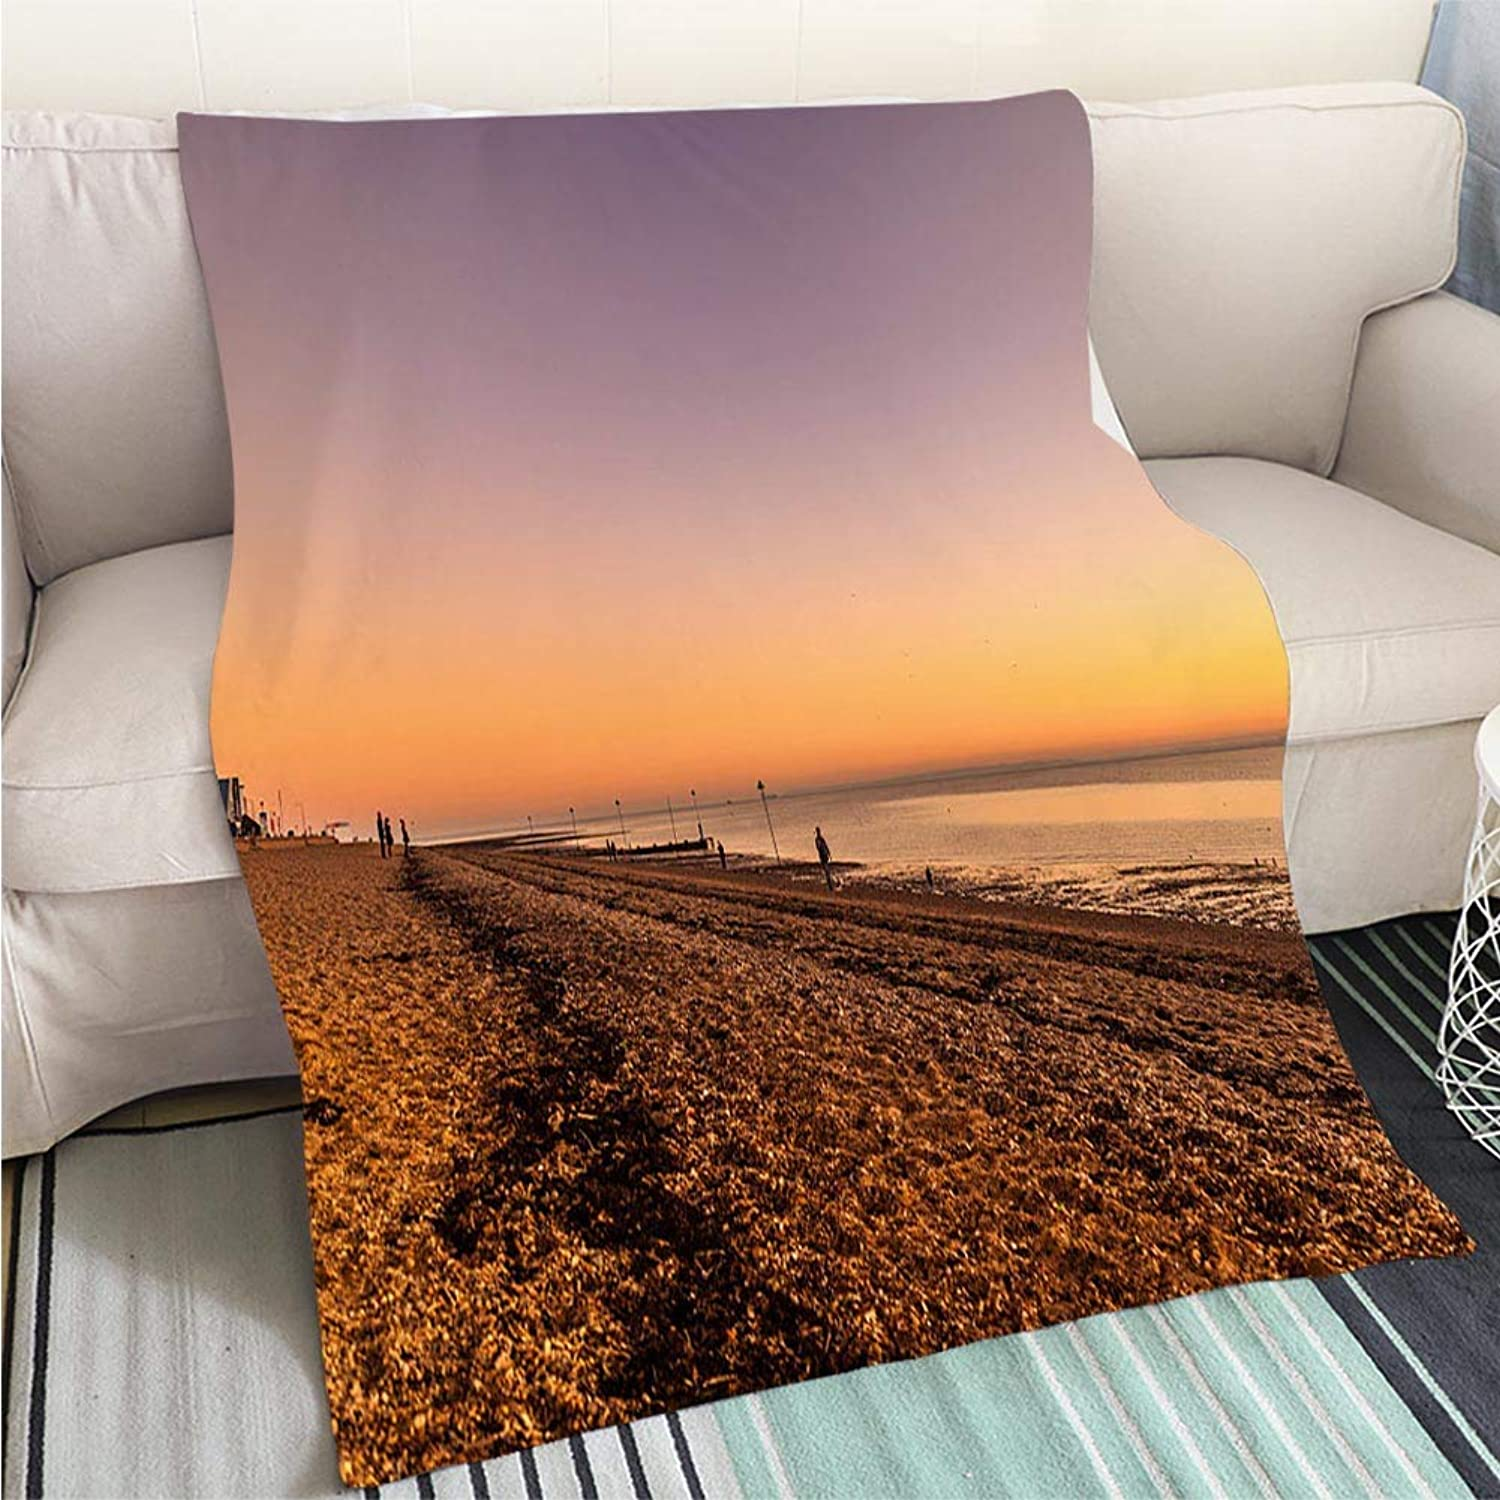 Comforter Multicolor Bed or Couch Southend on Sea Beach at Sunset Hypoallergenic Blanket for Bed Couch Chair